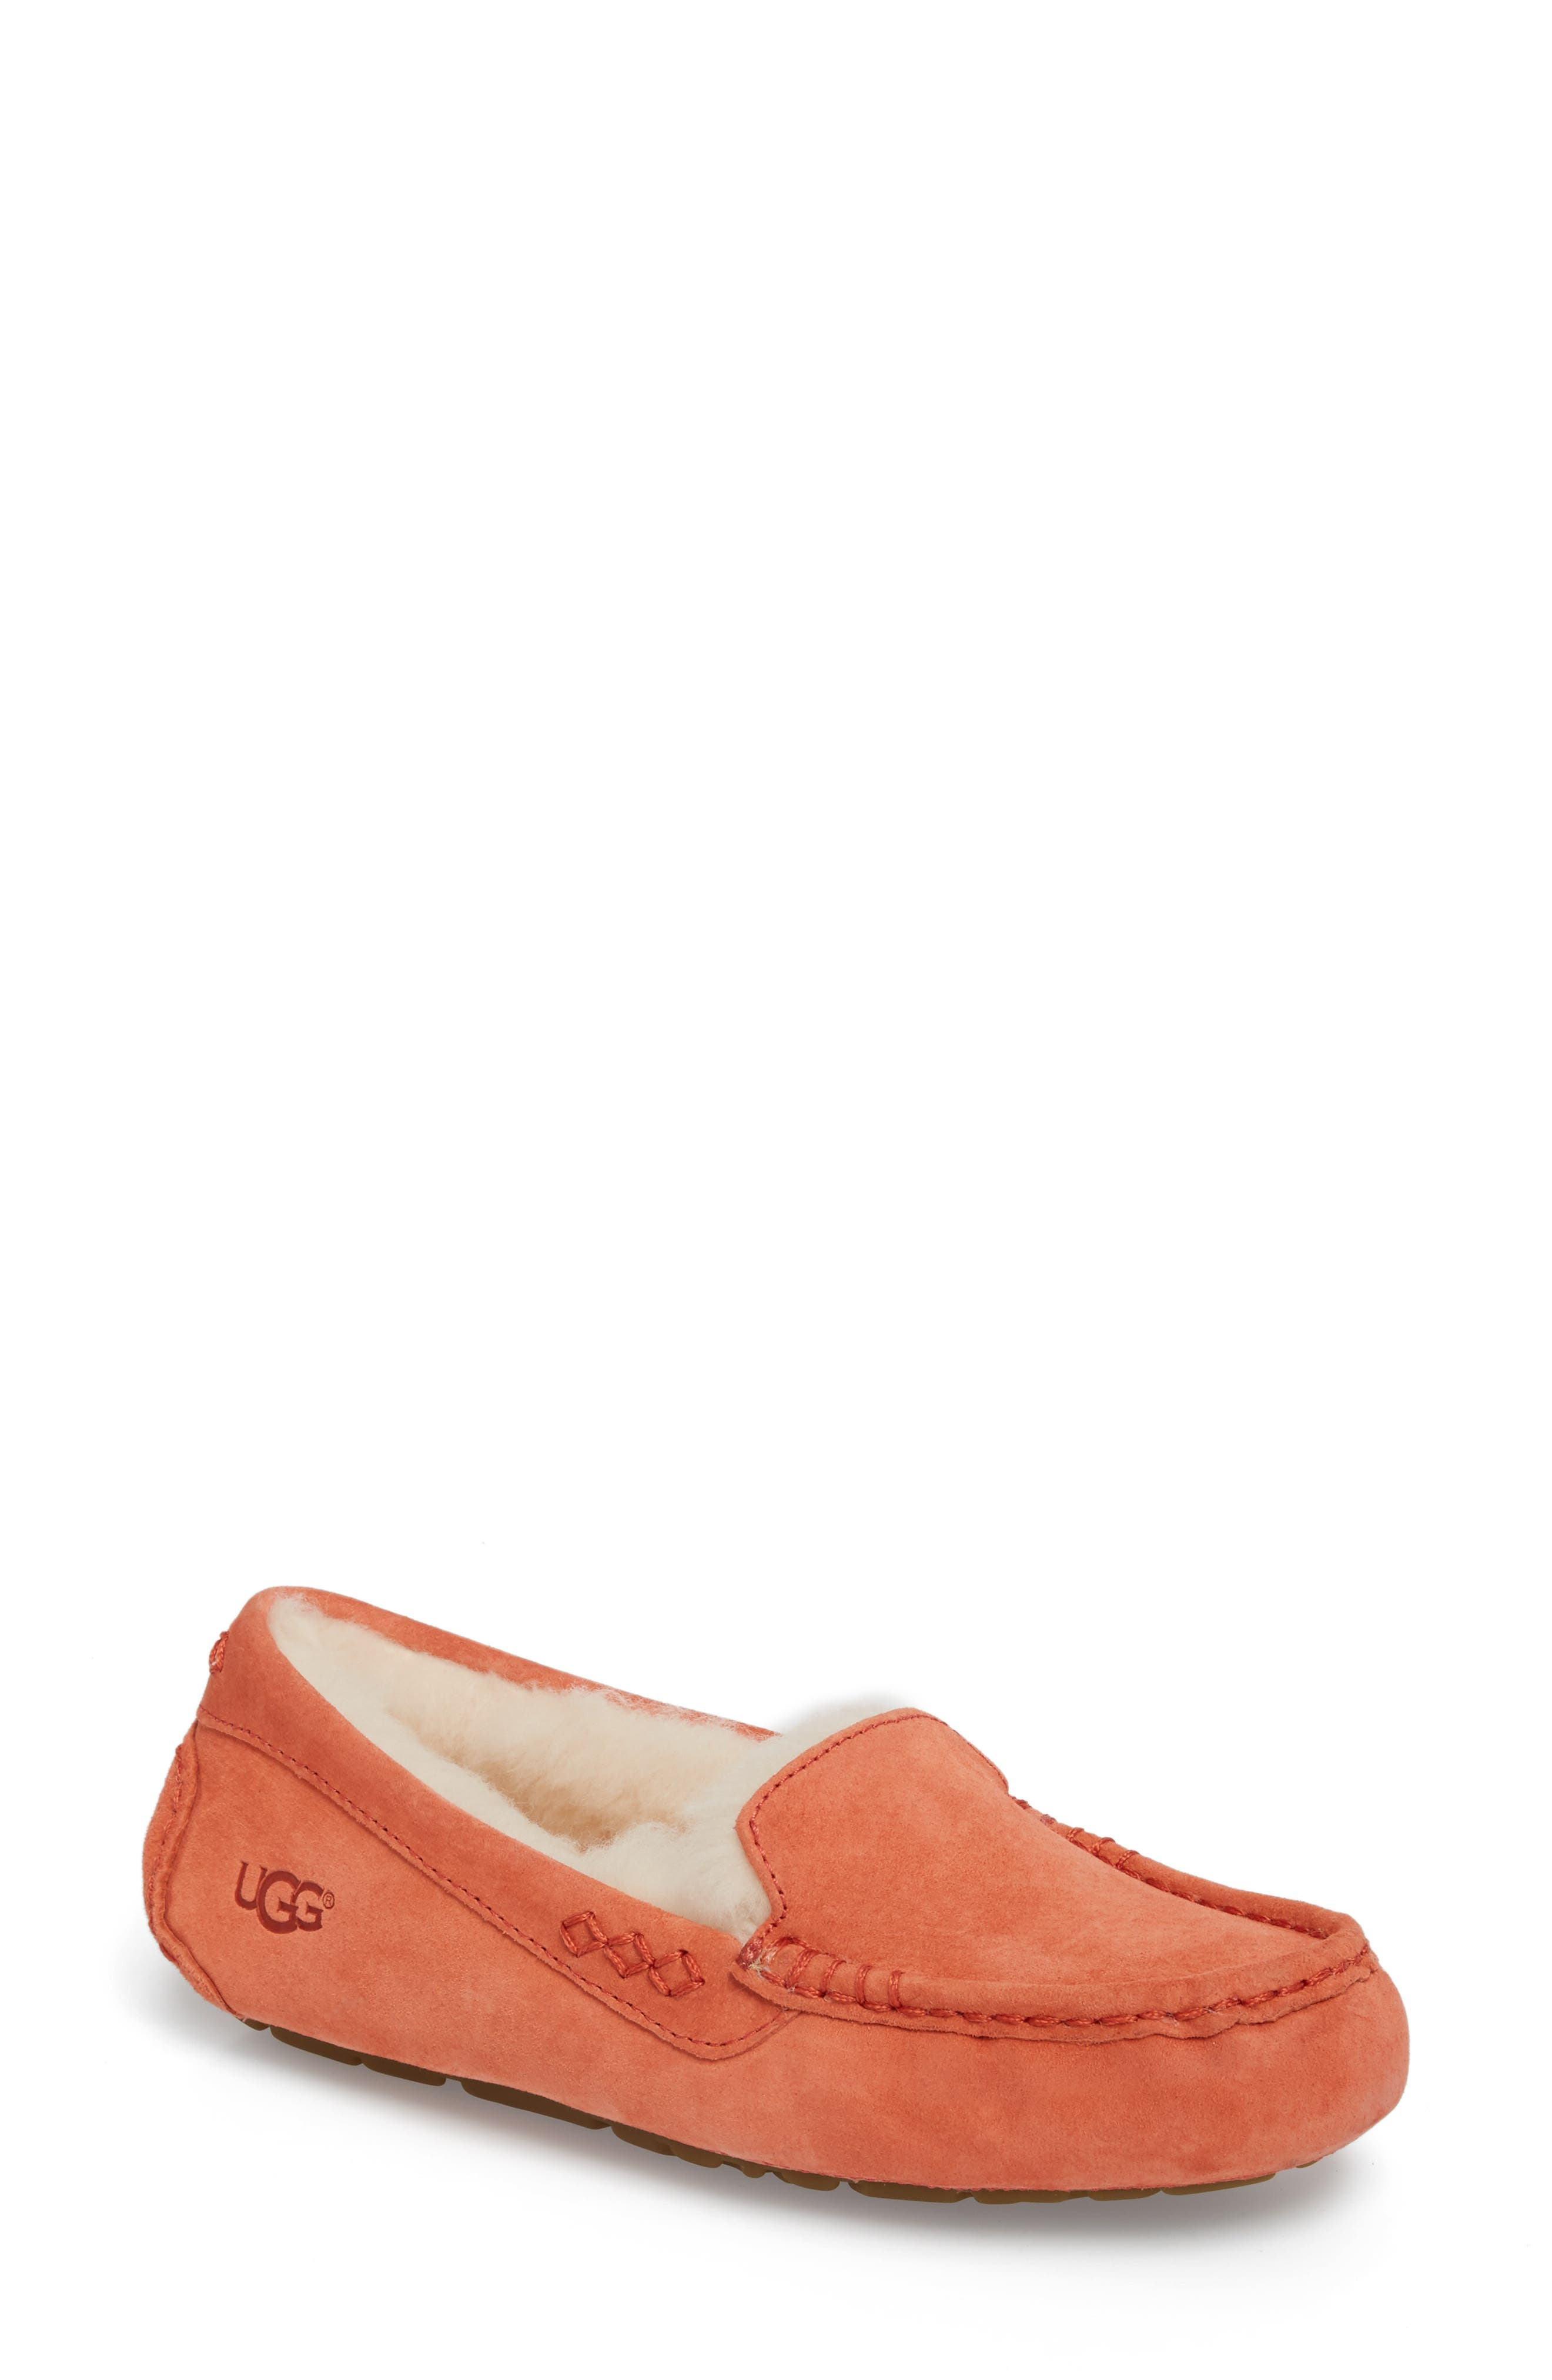 Main Image - UGG® Ansley Water Resistant Slipper (Women)